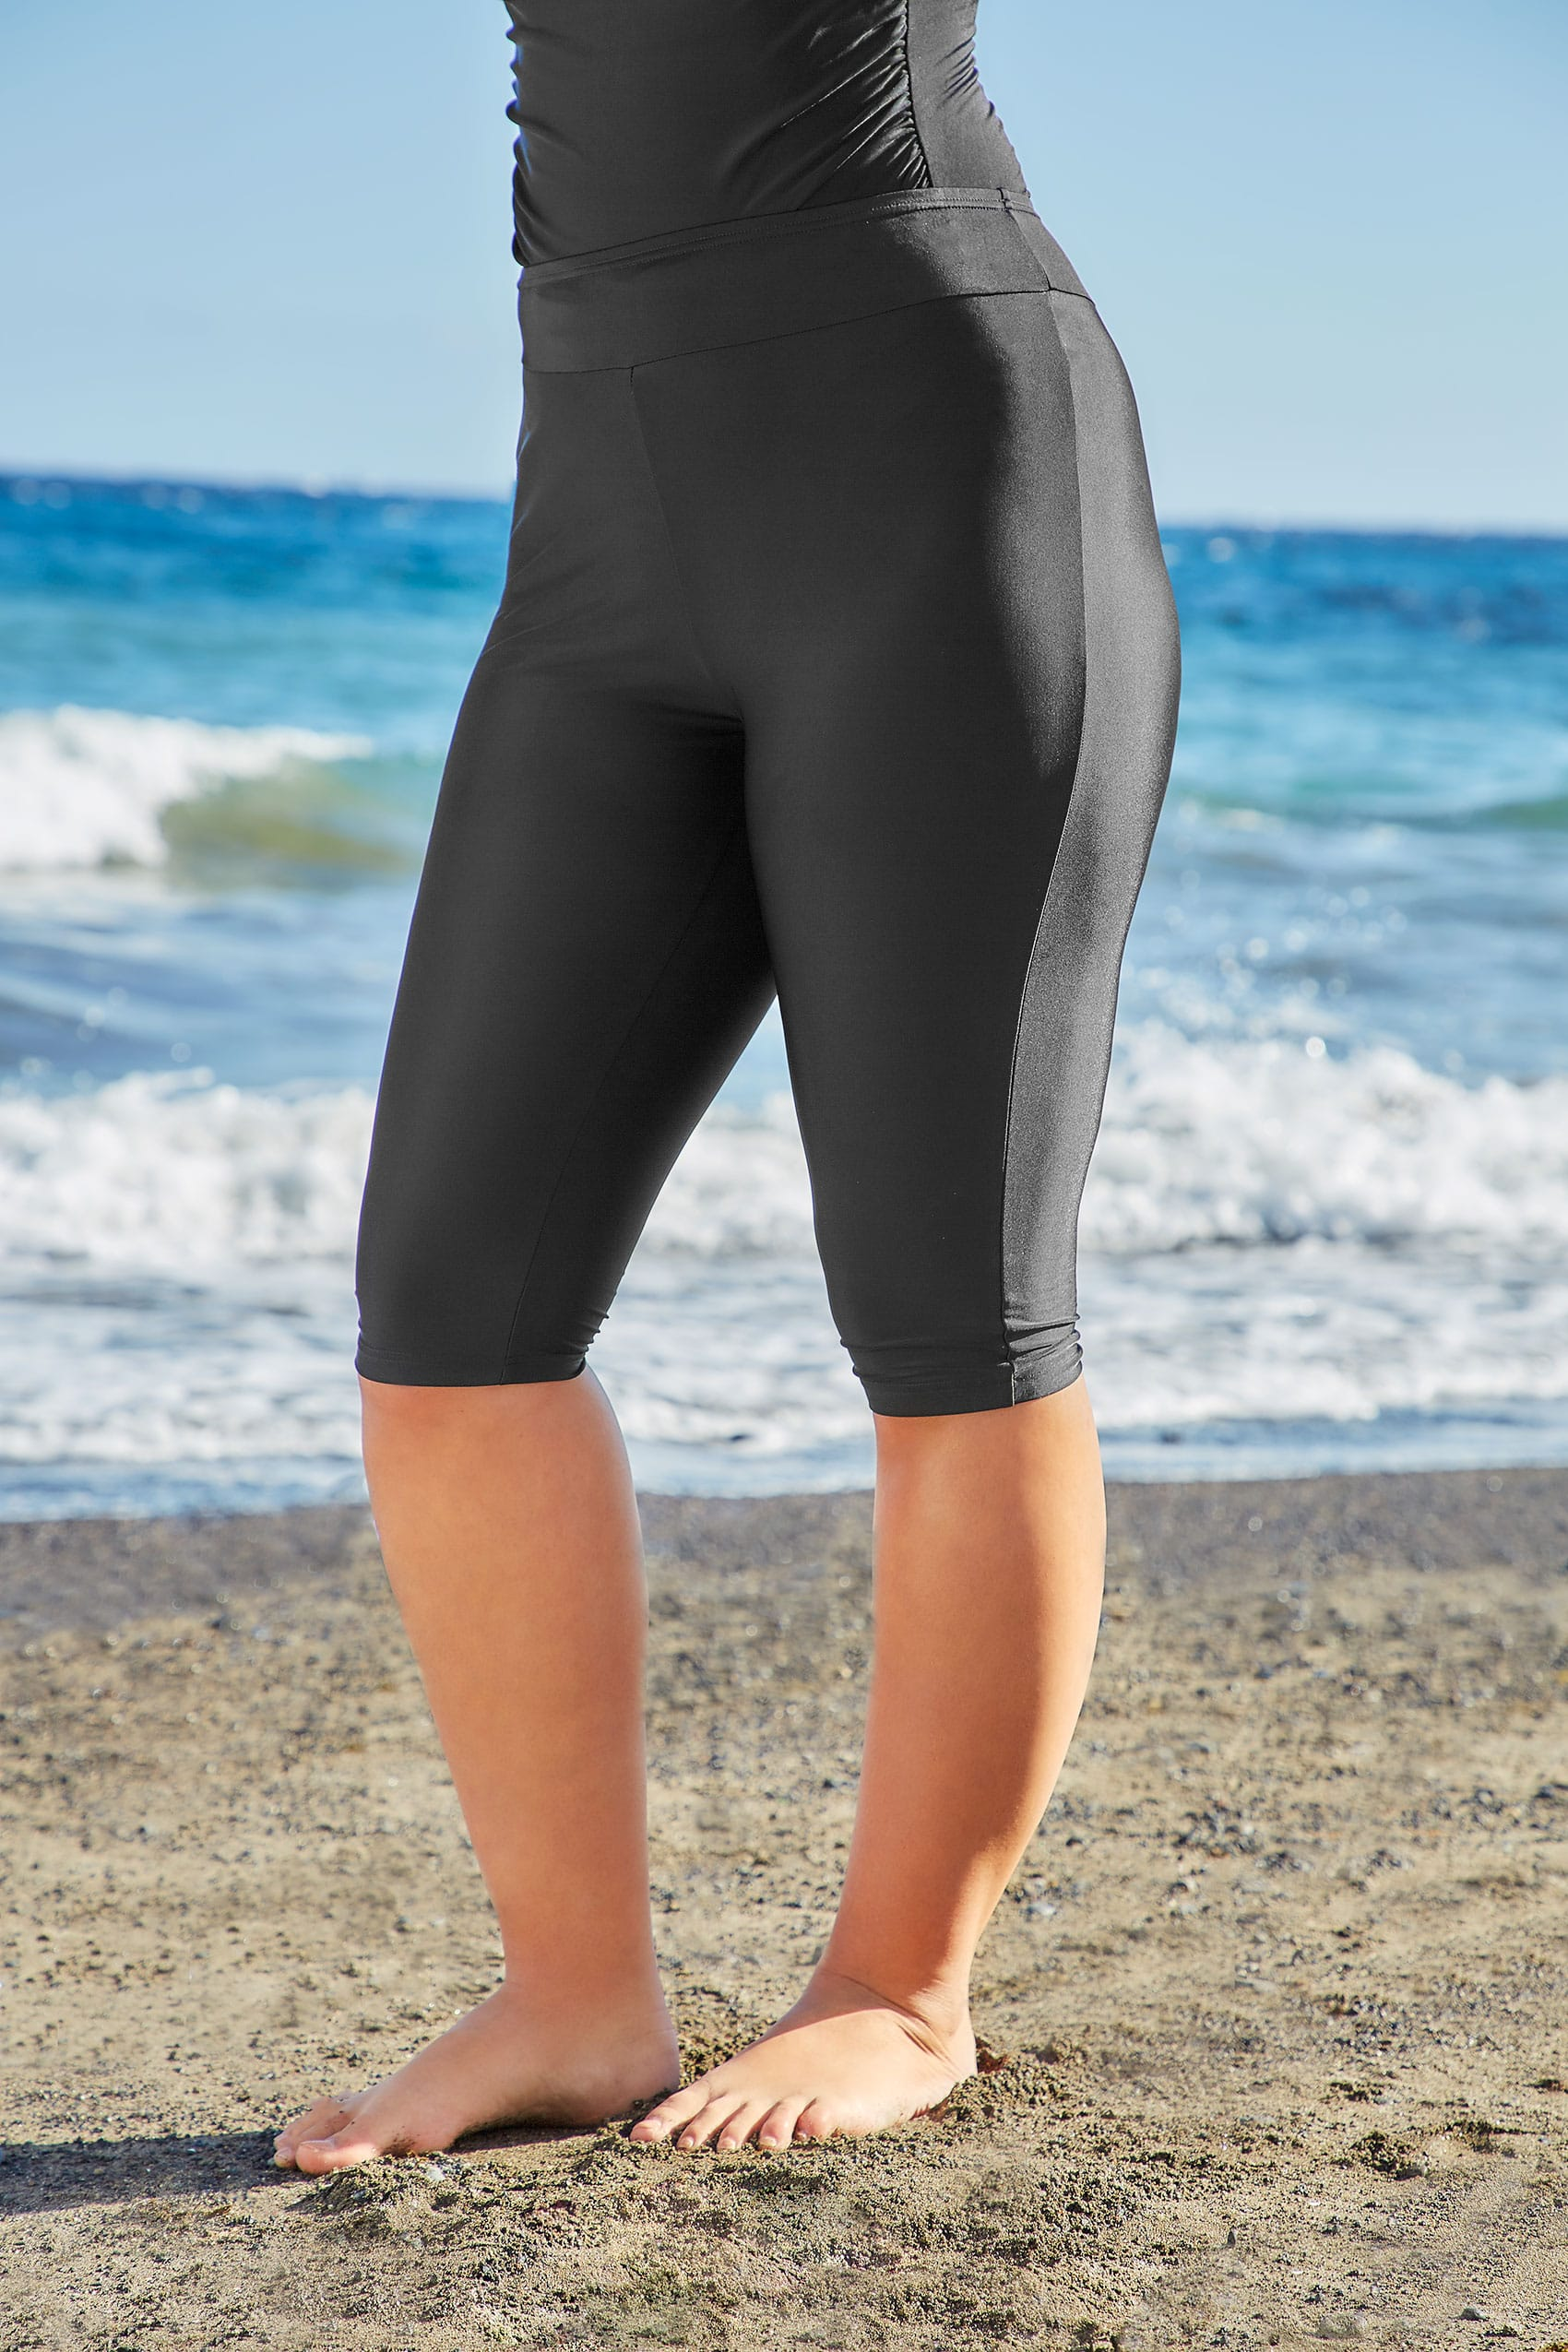 Black Stretch Swim Shorts Plus Sizes 16,18,20,22,24,26,28 -6792